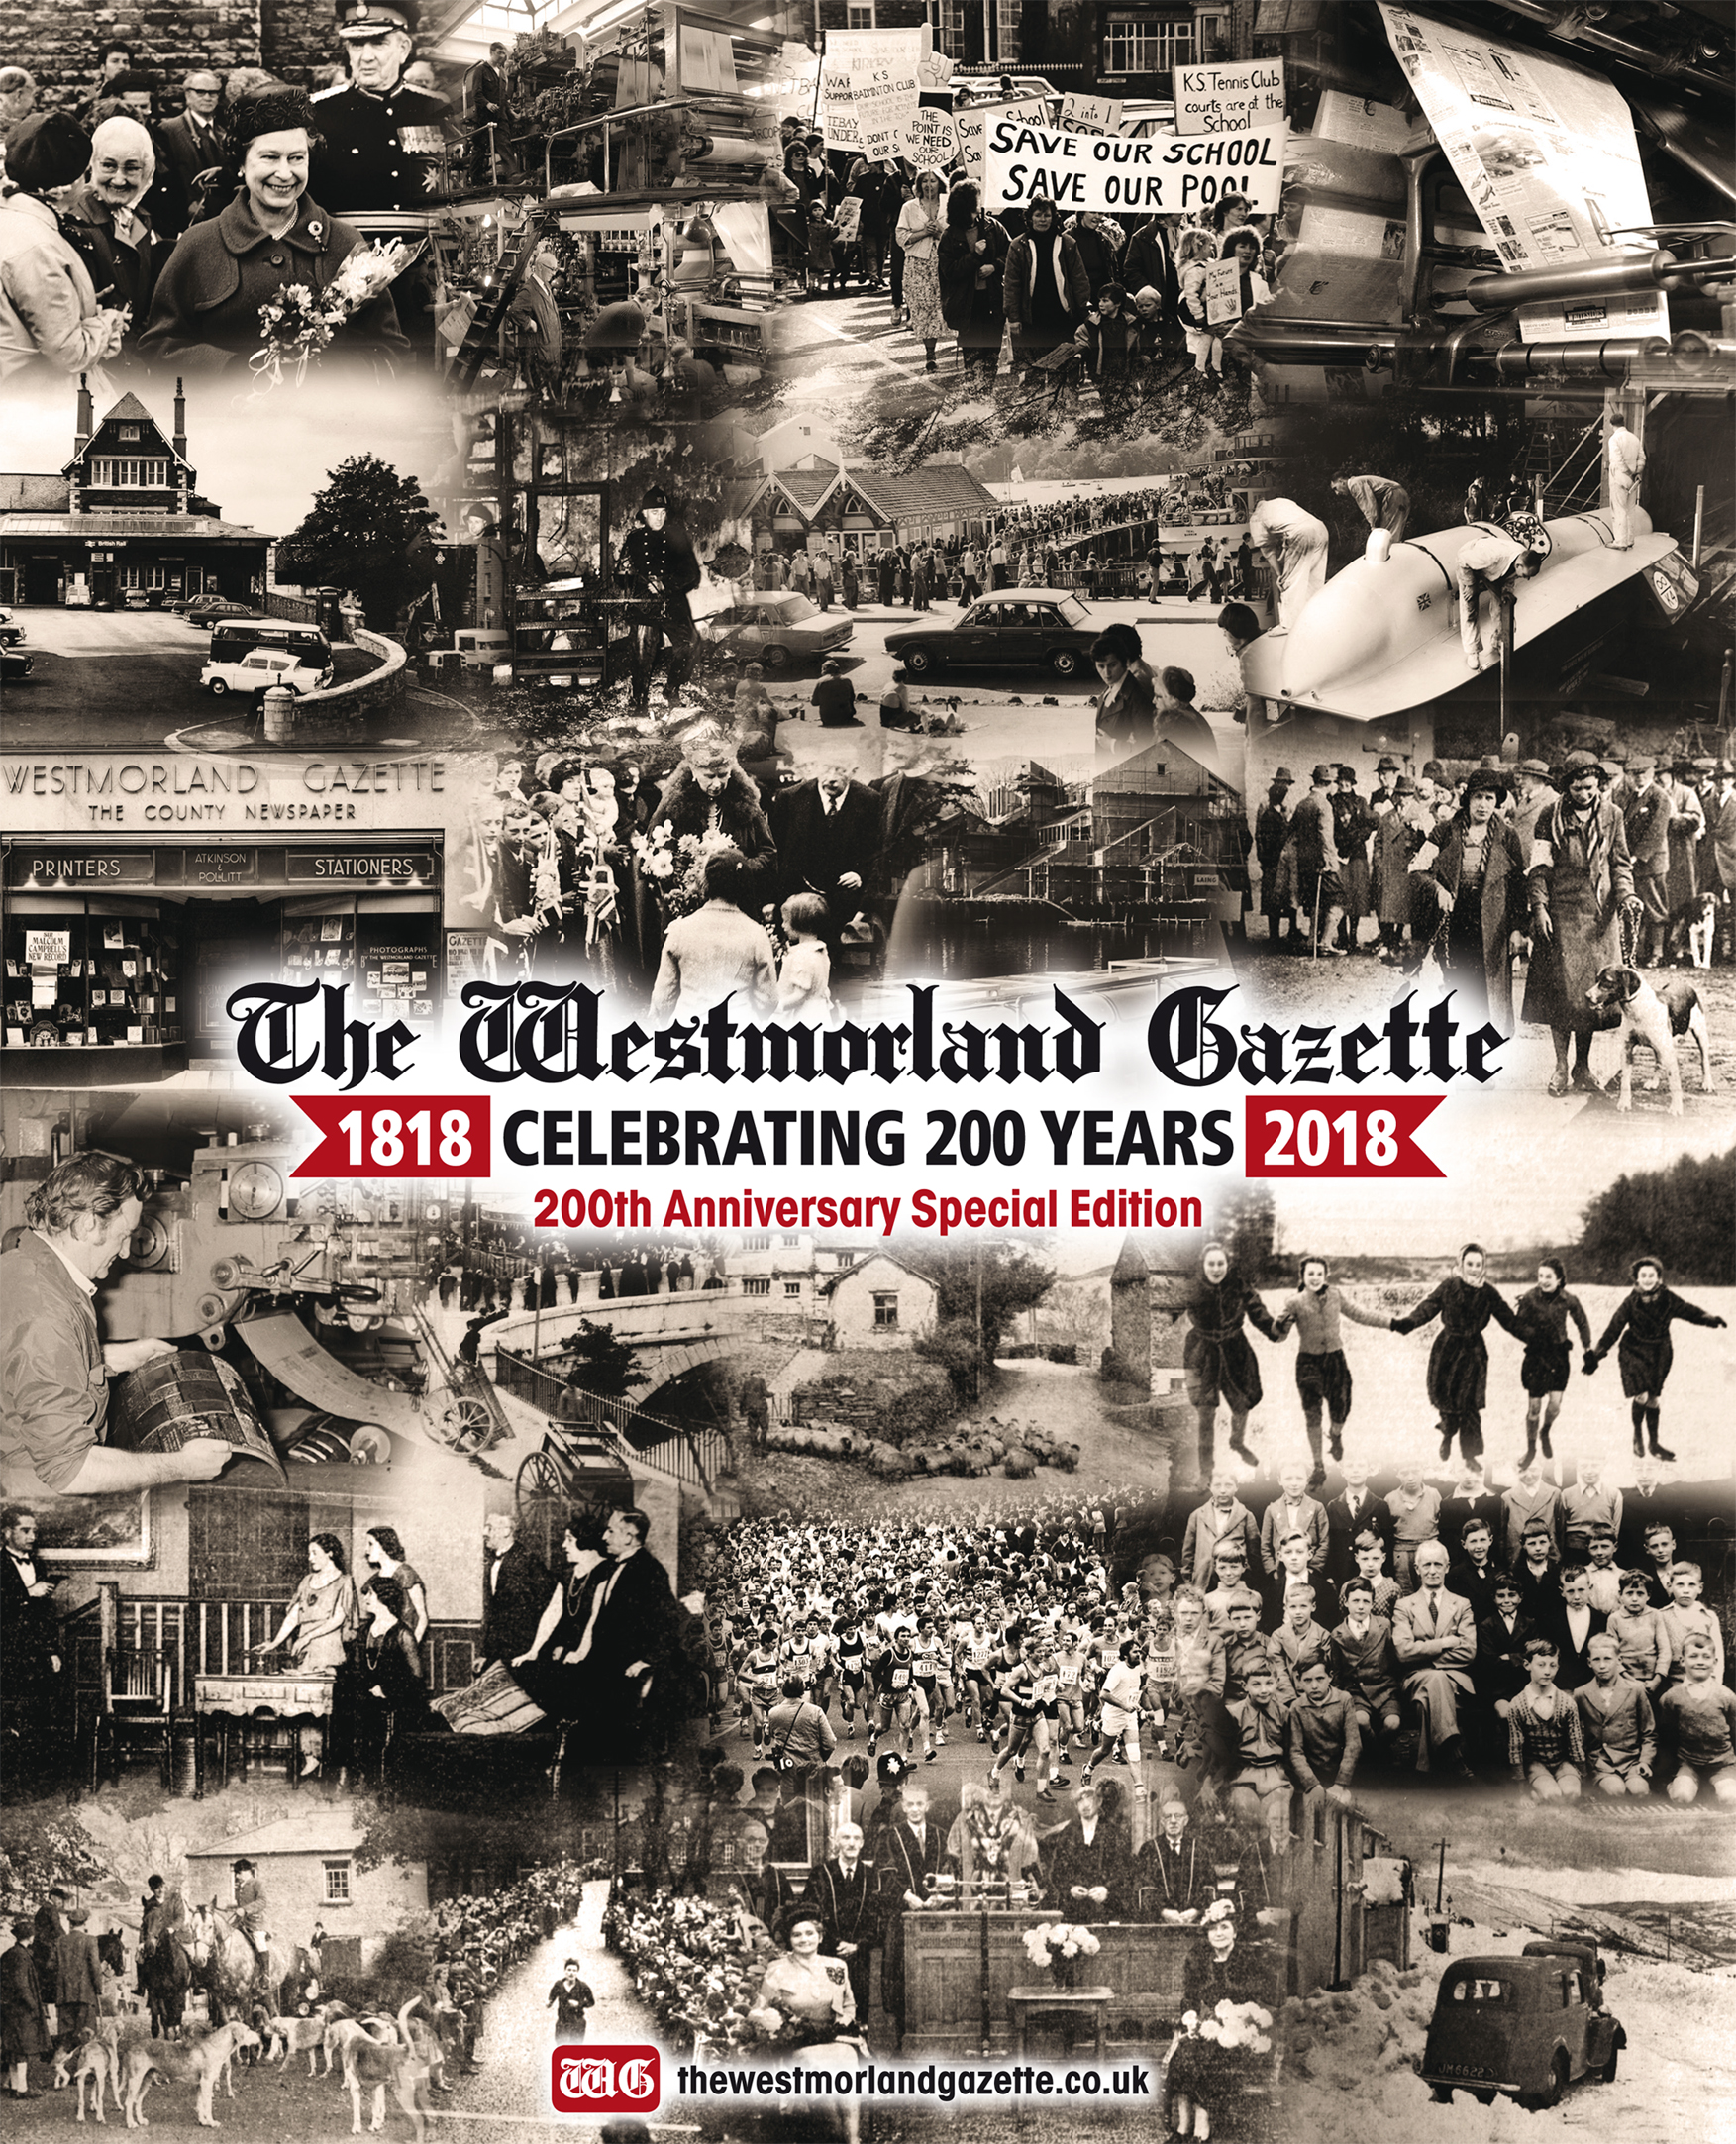 Don't miss your 48-page supplement to mark the 200th anniversary of The Westmorland Gaztte - on sale today!